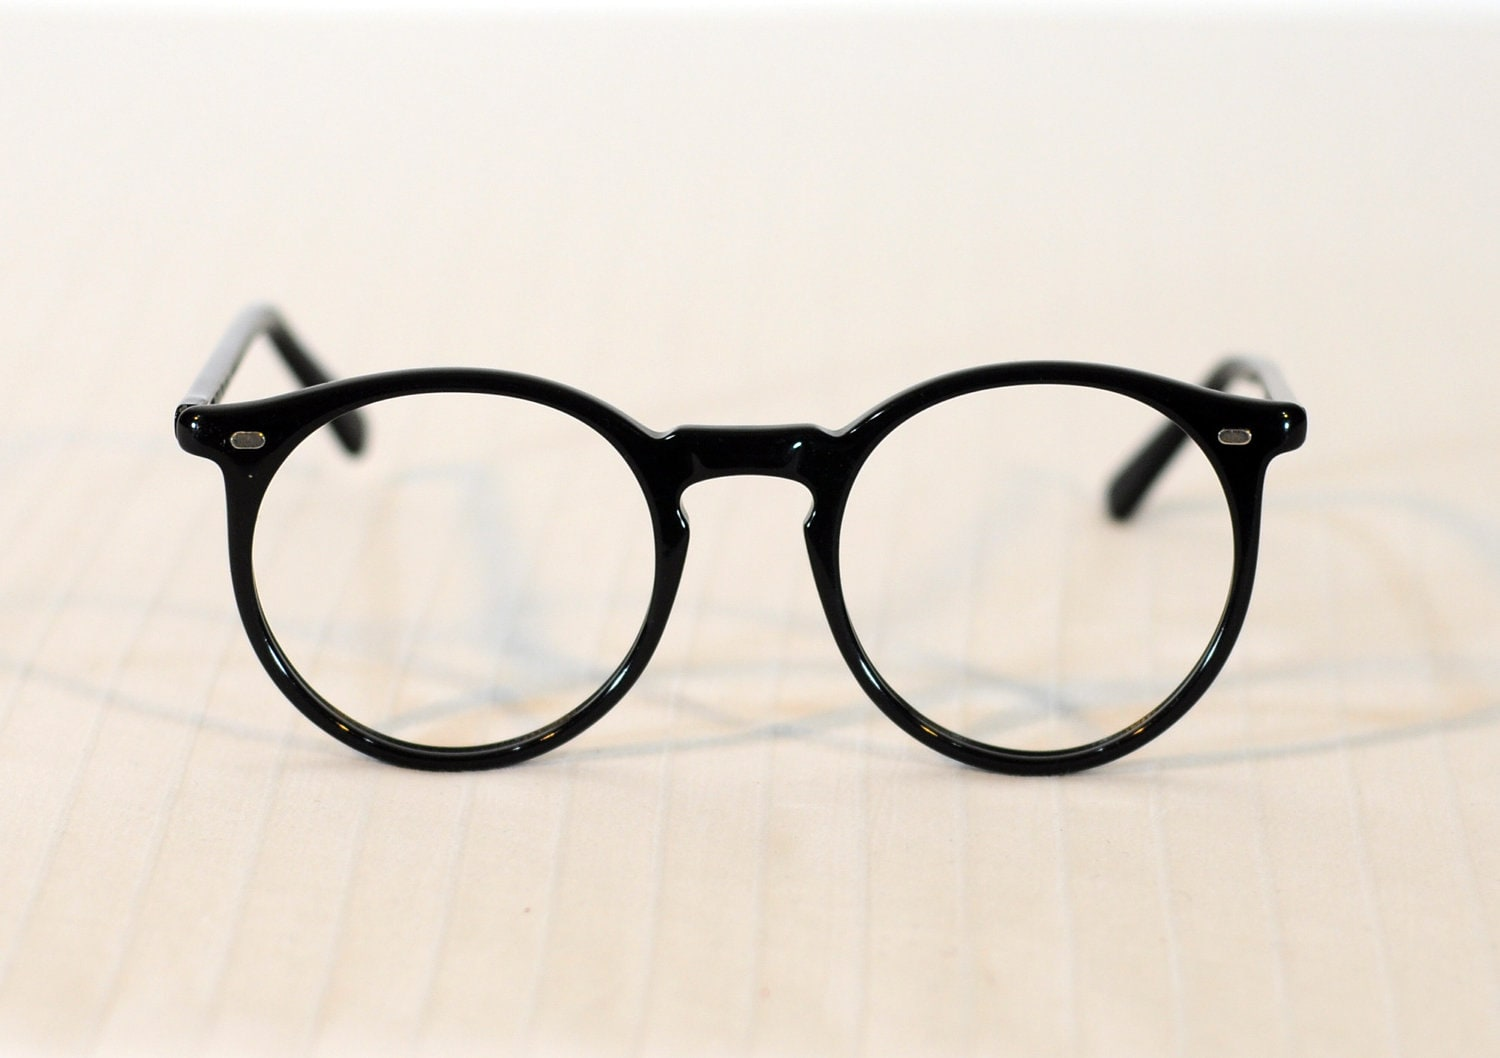 Eyeglass Frames Fairview Heights Il : 60s Eyeglasses Frames Oversized Round Black Plastic Vanity NOS